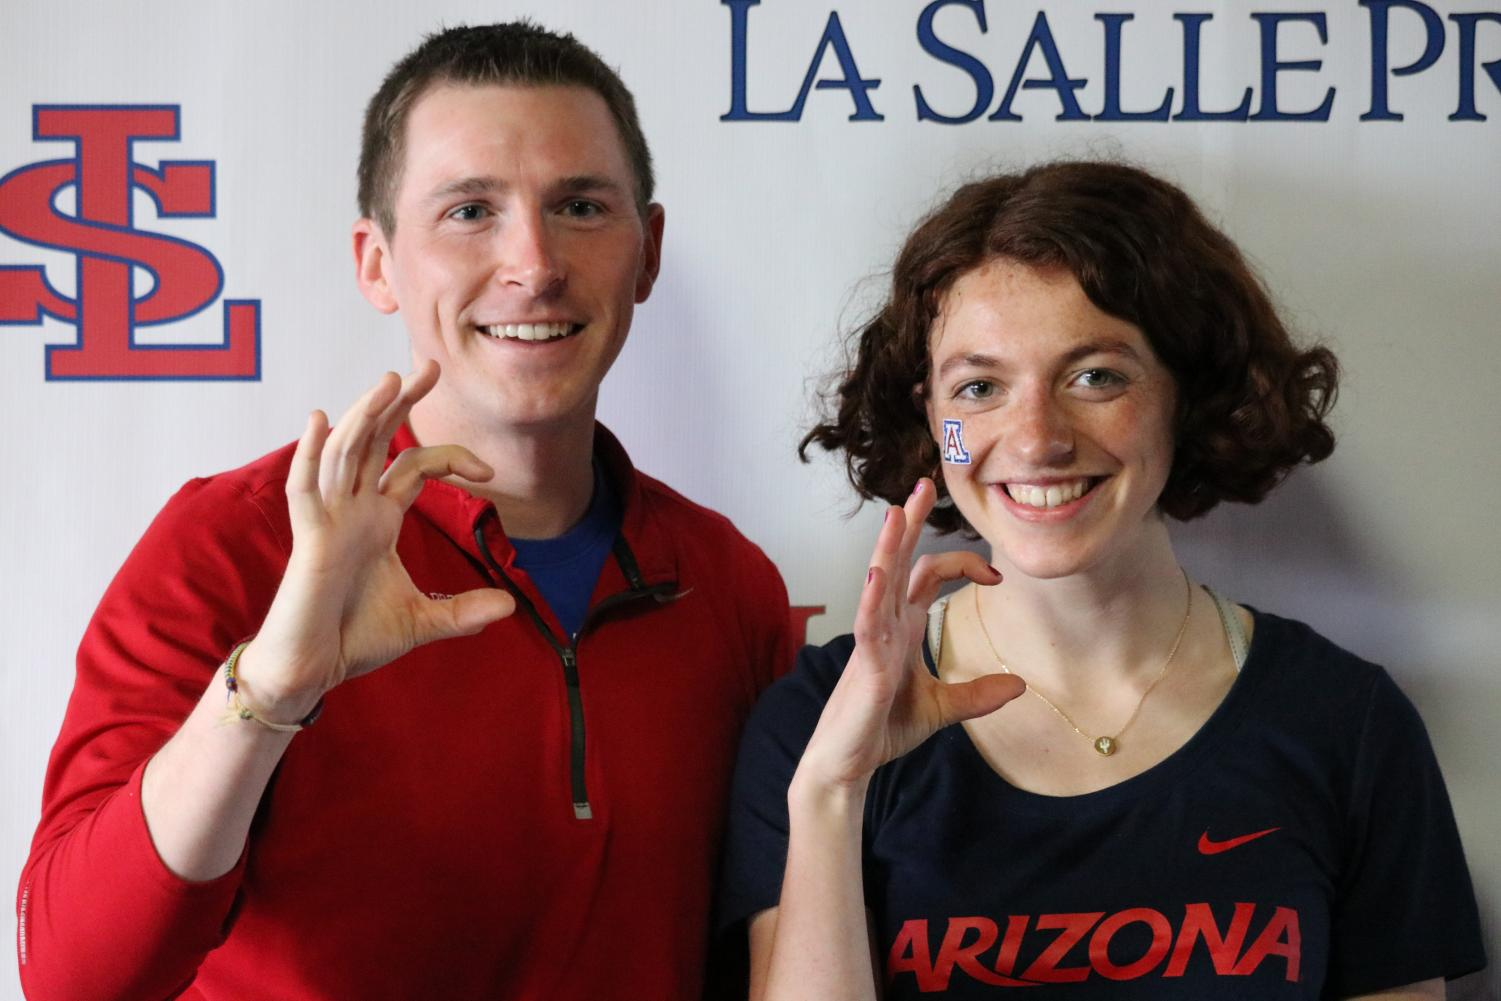 Hanley+and+head+track+coach+Mikel+Rathmann+pose+together+holding+up+the+Wildcats+symbol.